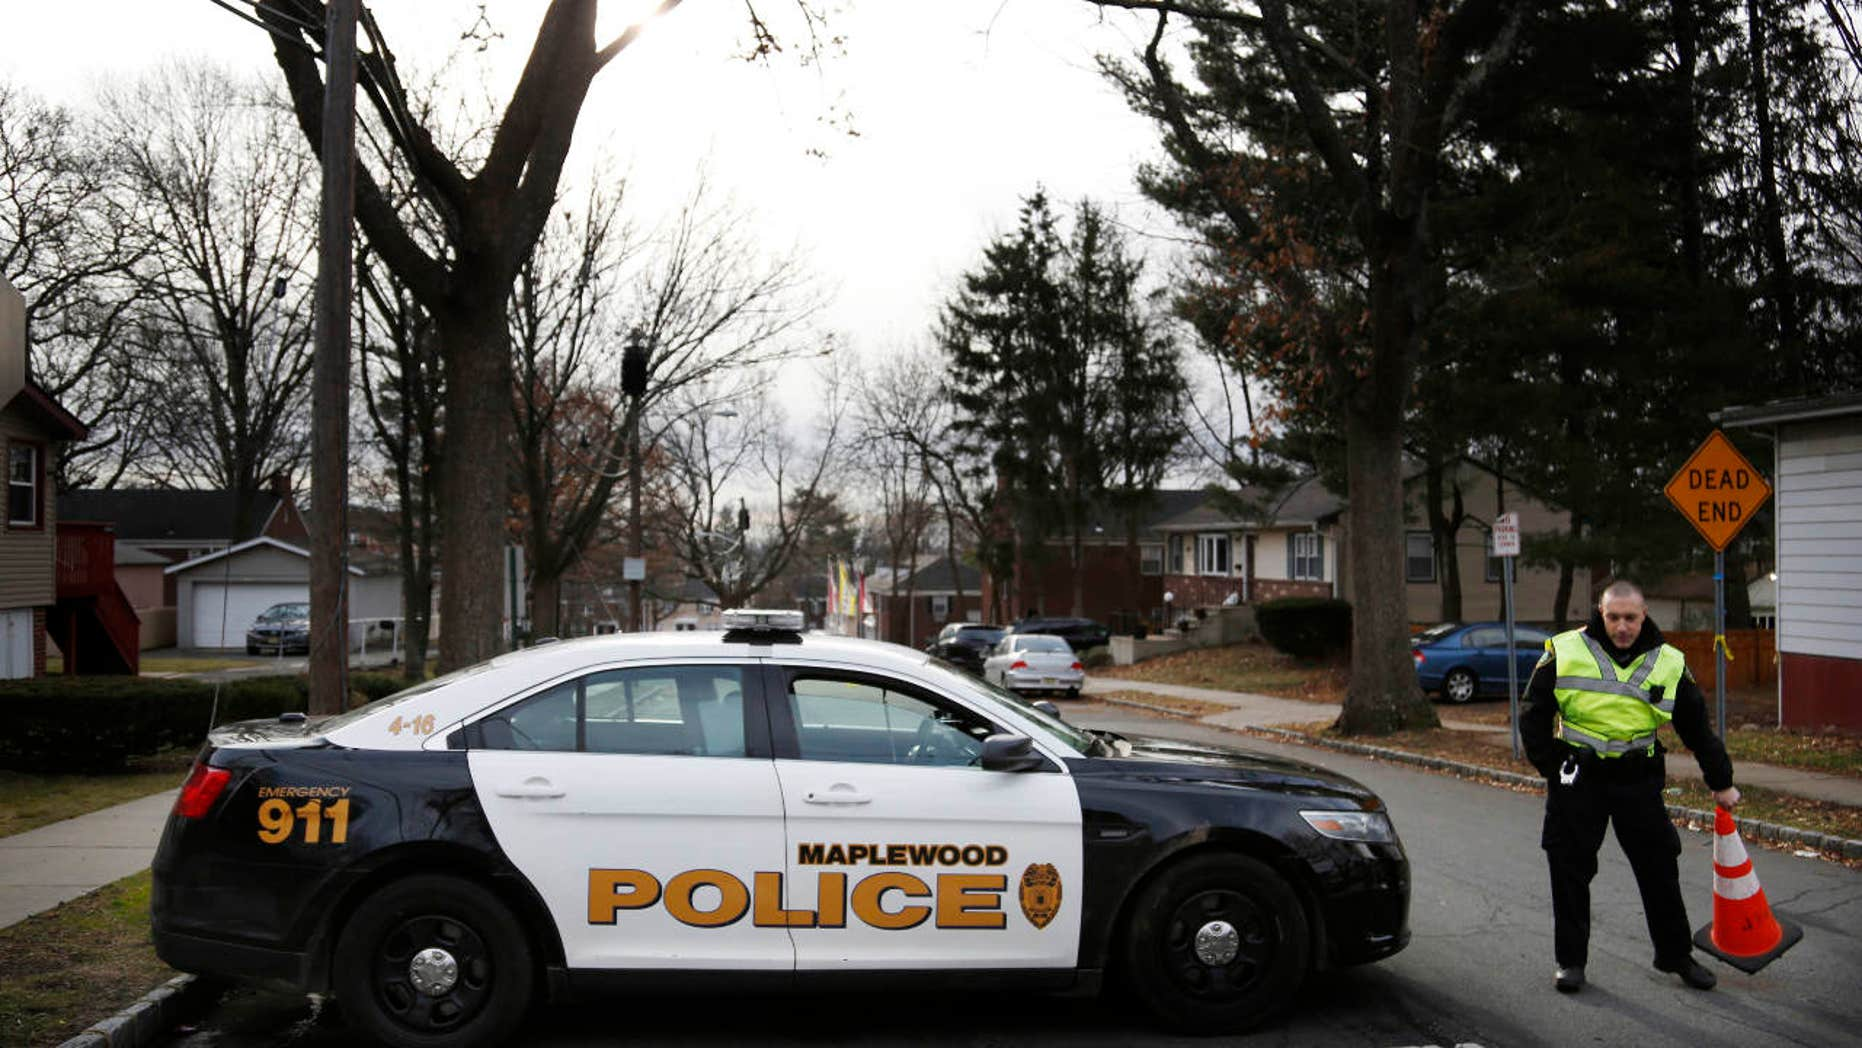 A police officers blocks the entrance to Van Ness Court in Maplewood, N.J., Monday, Jan. 30, 2017, the day after three people were found dead in an apartment there.